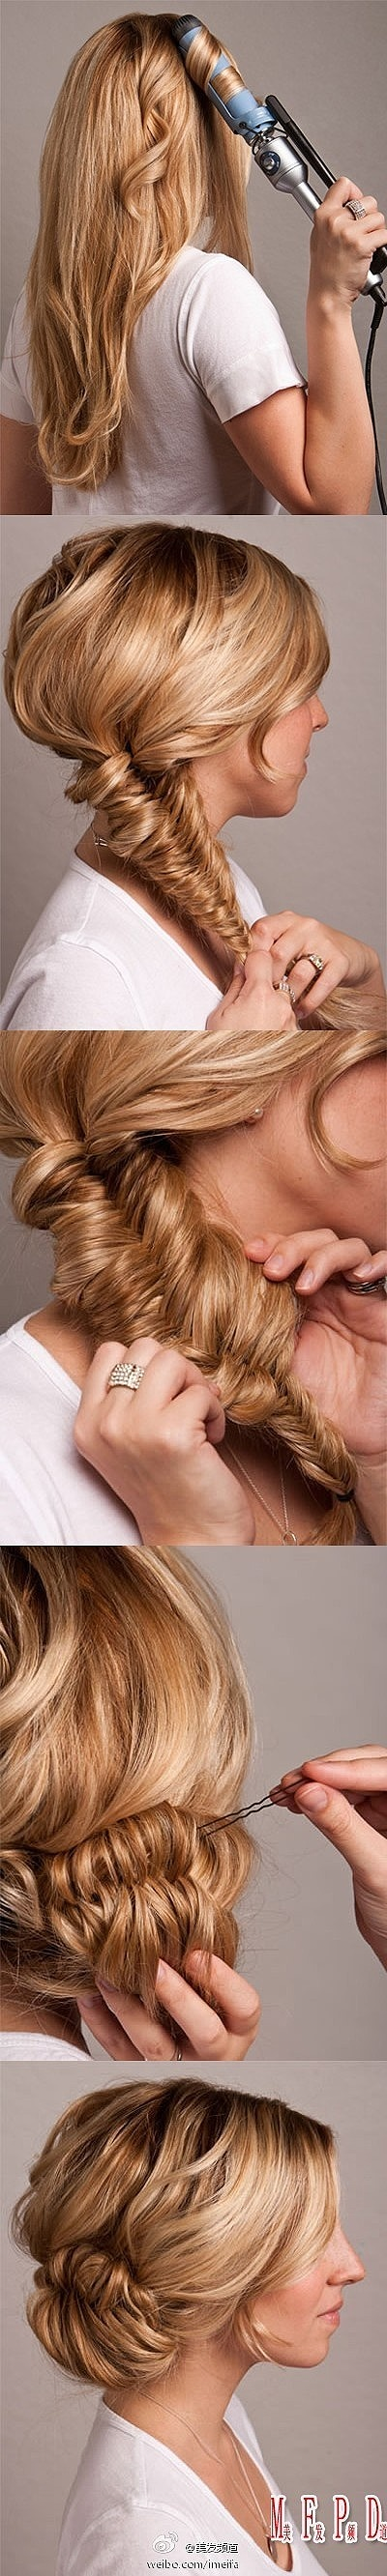 Hairstyle Tutorials (19)